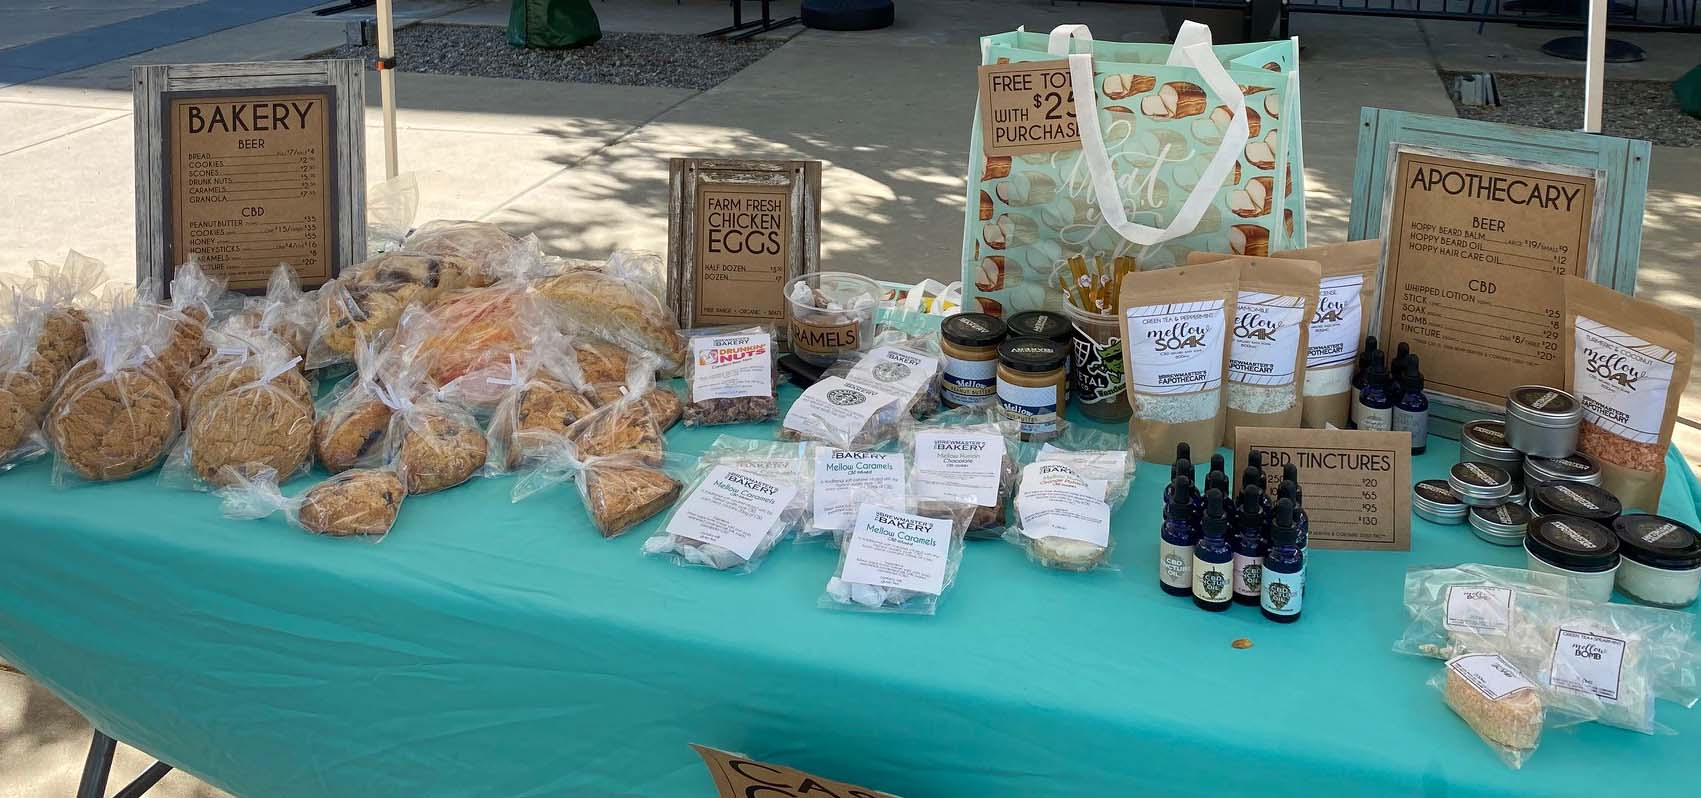 Table at a farmer's market filled with baked goods.